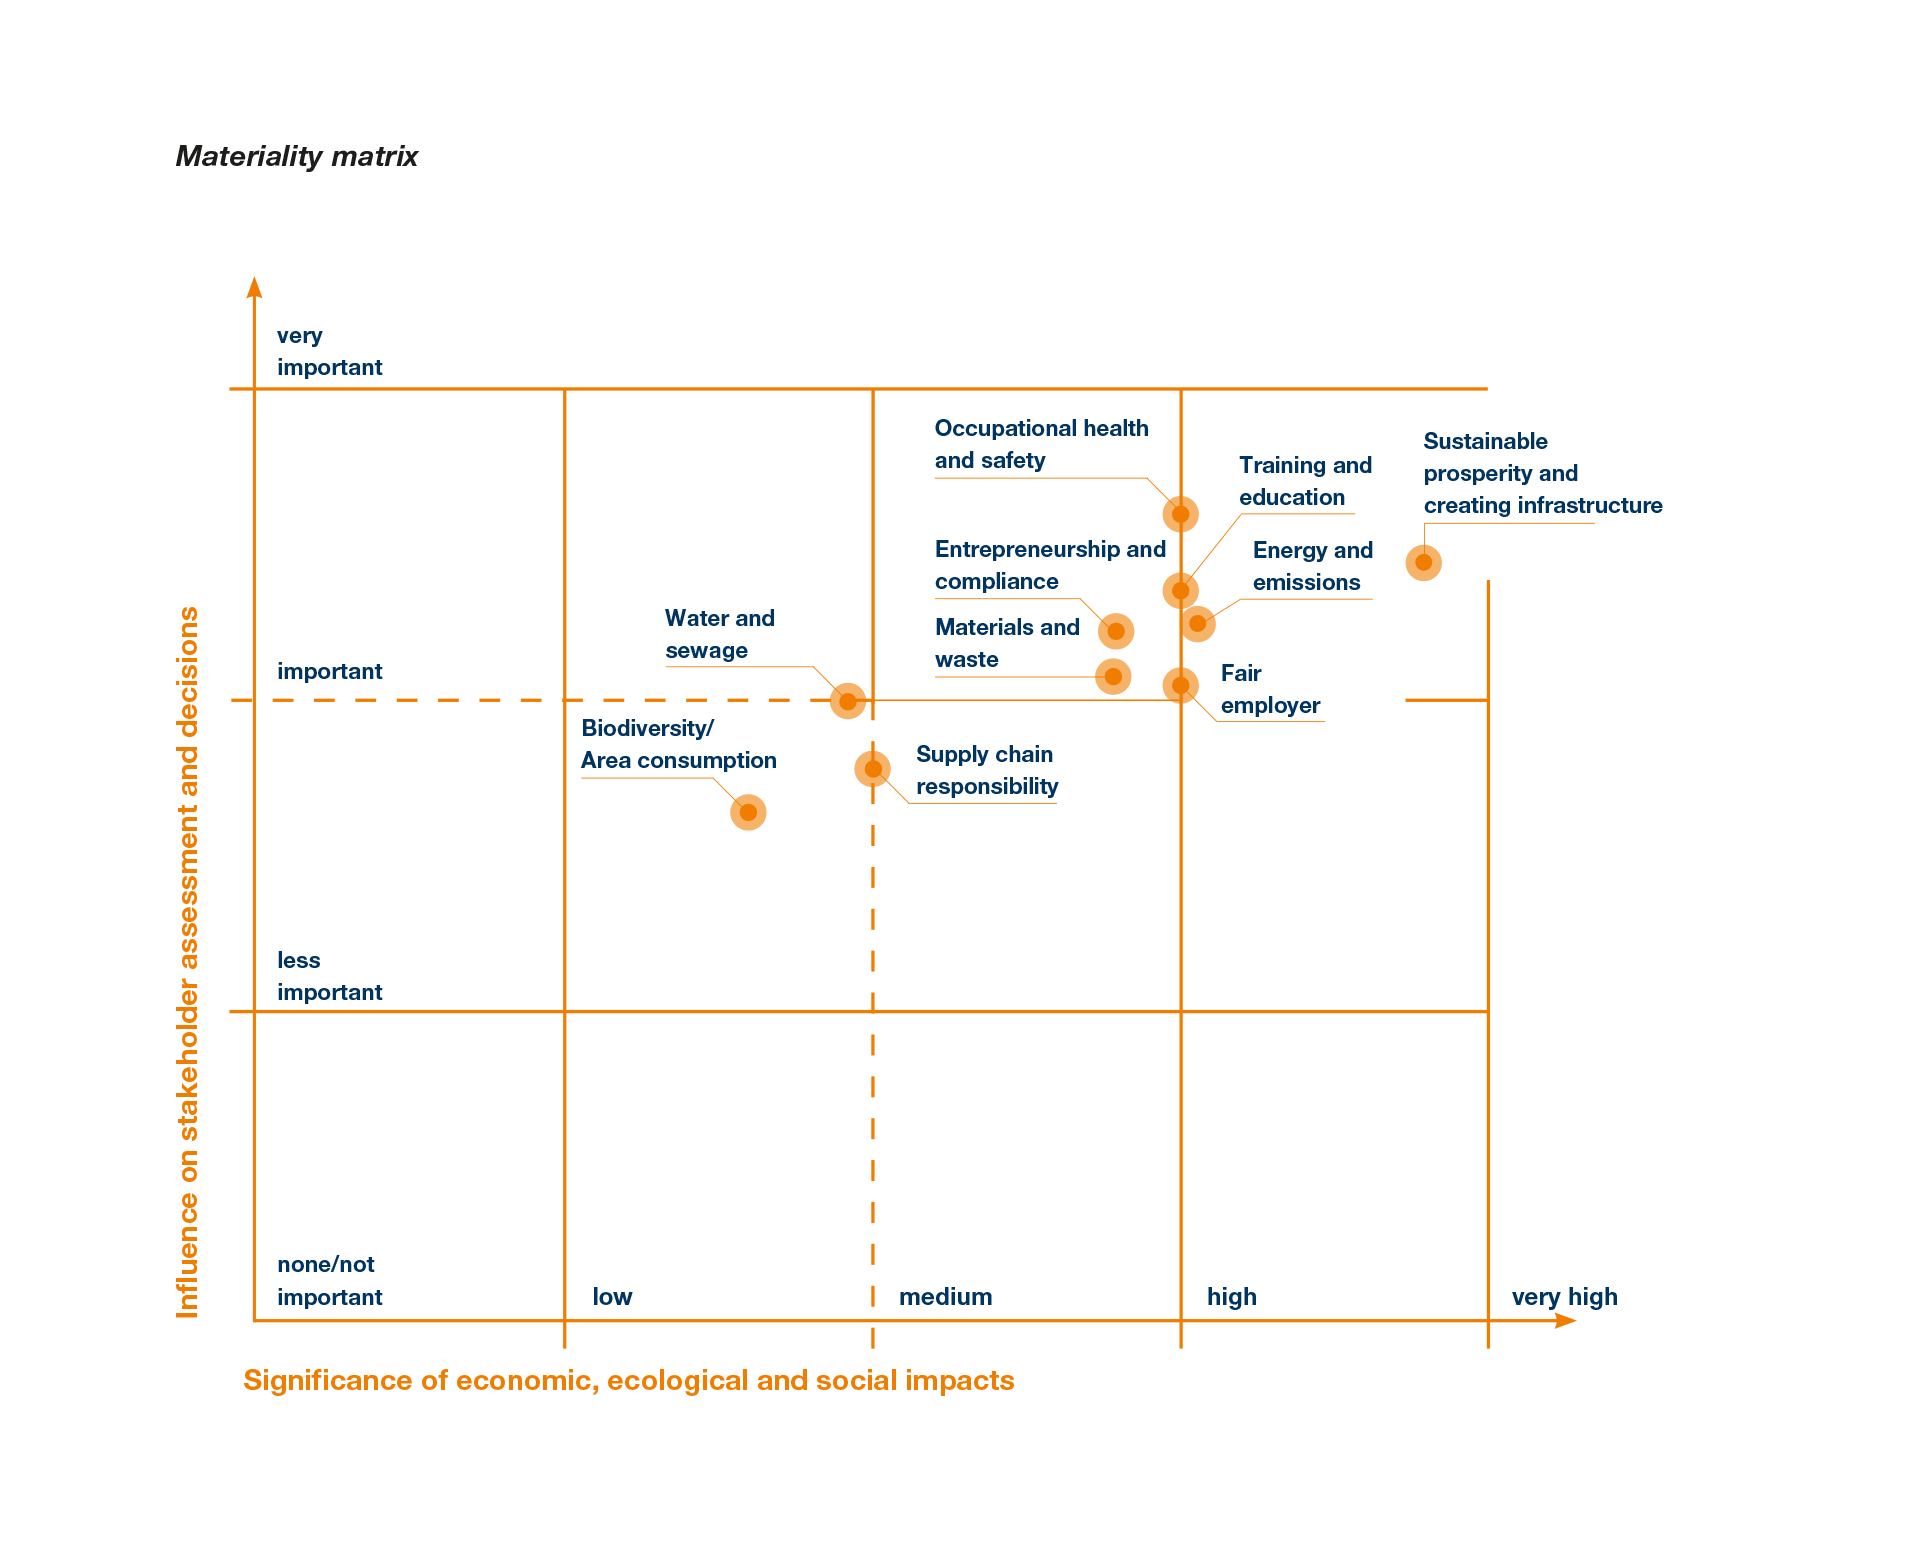 SWI NHB 51 Materiality Matrix EN L1